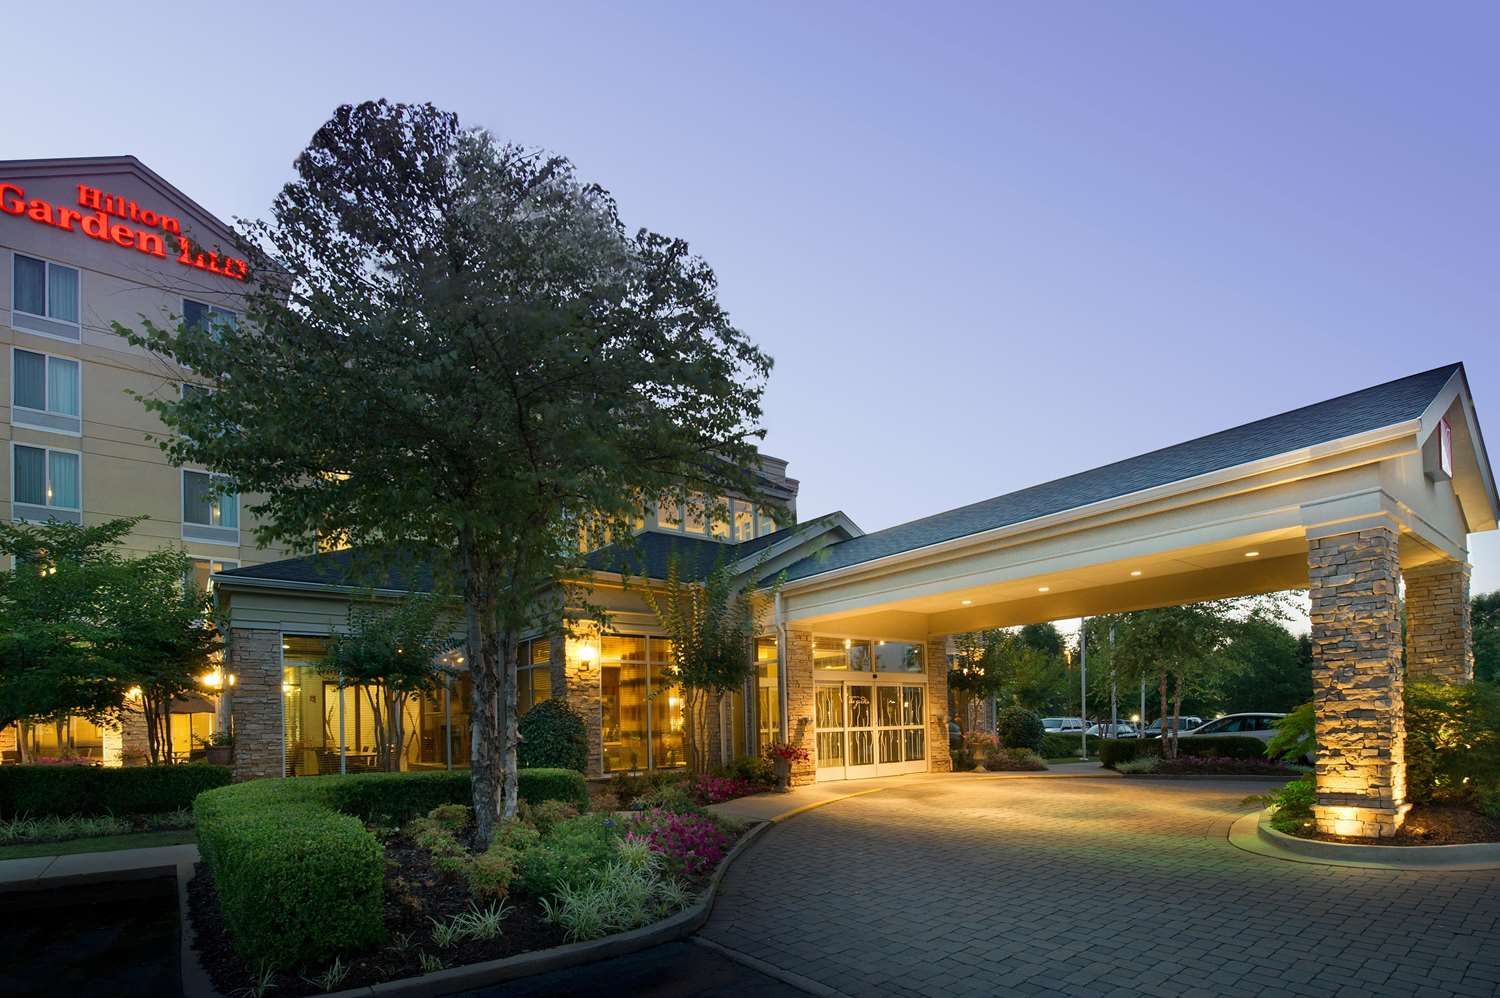 Hilton Garden inn Atlanta NW-Kennesaw Town Center